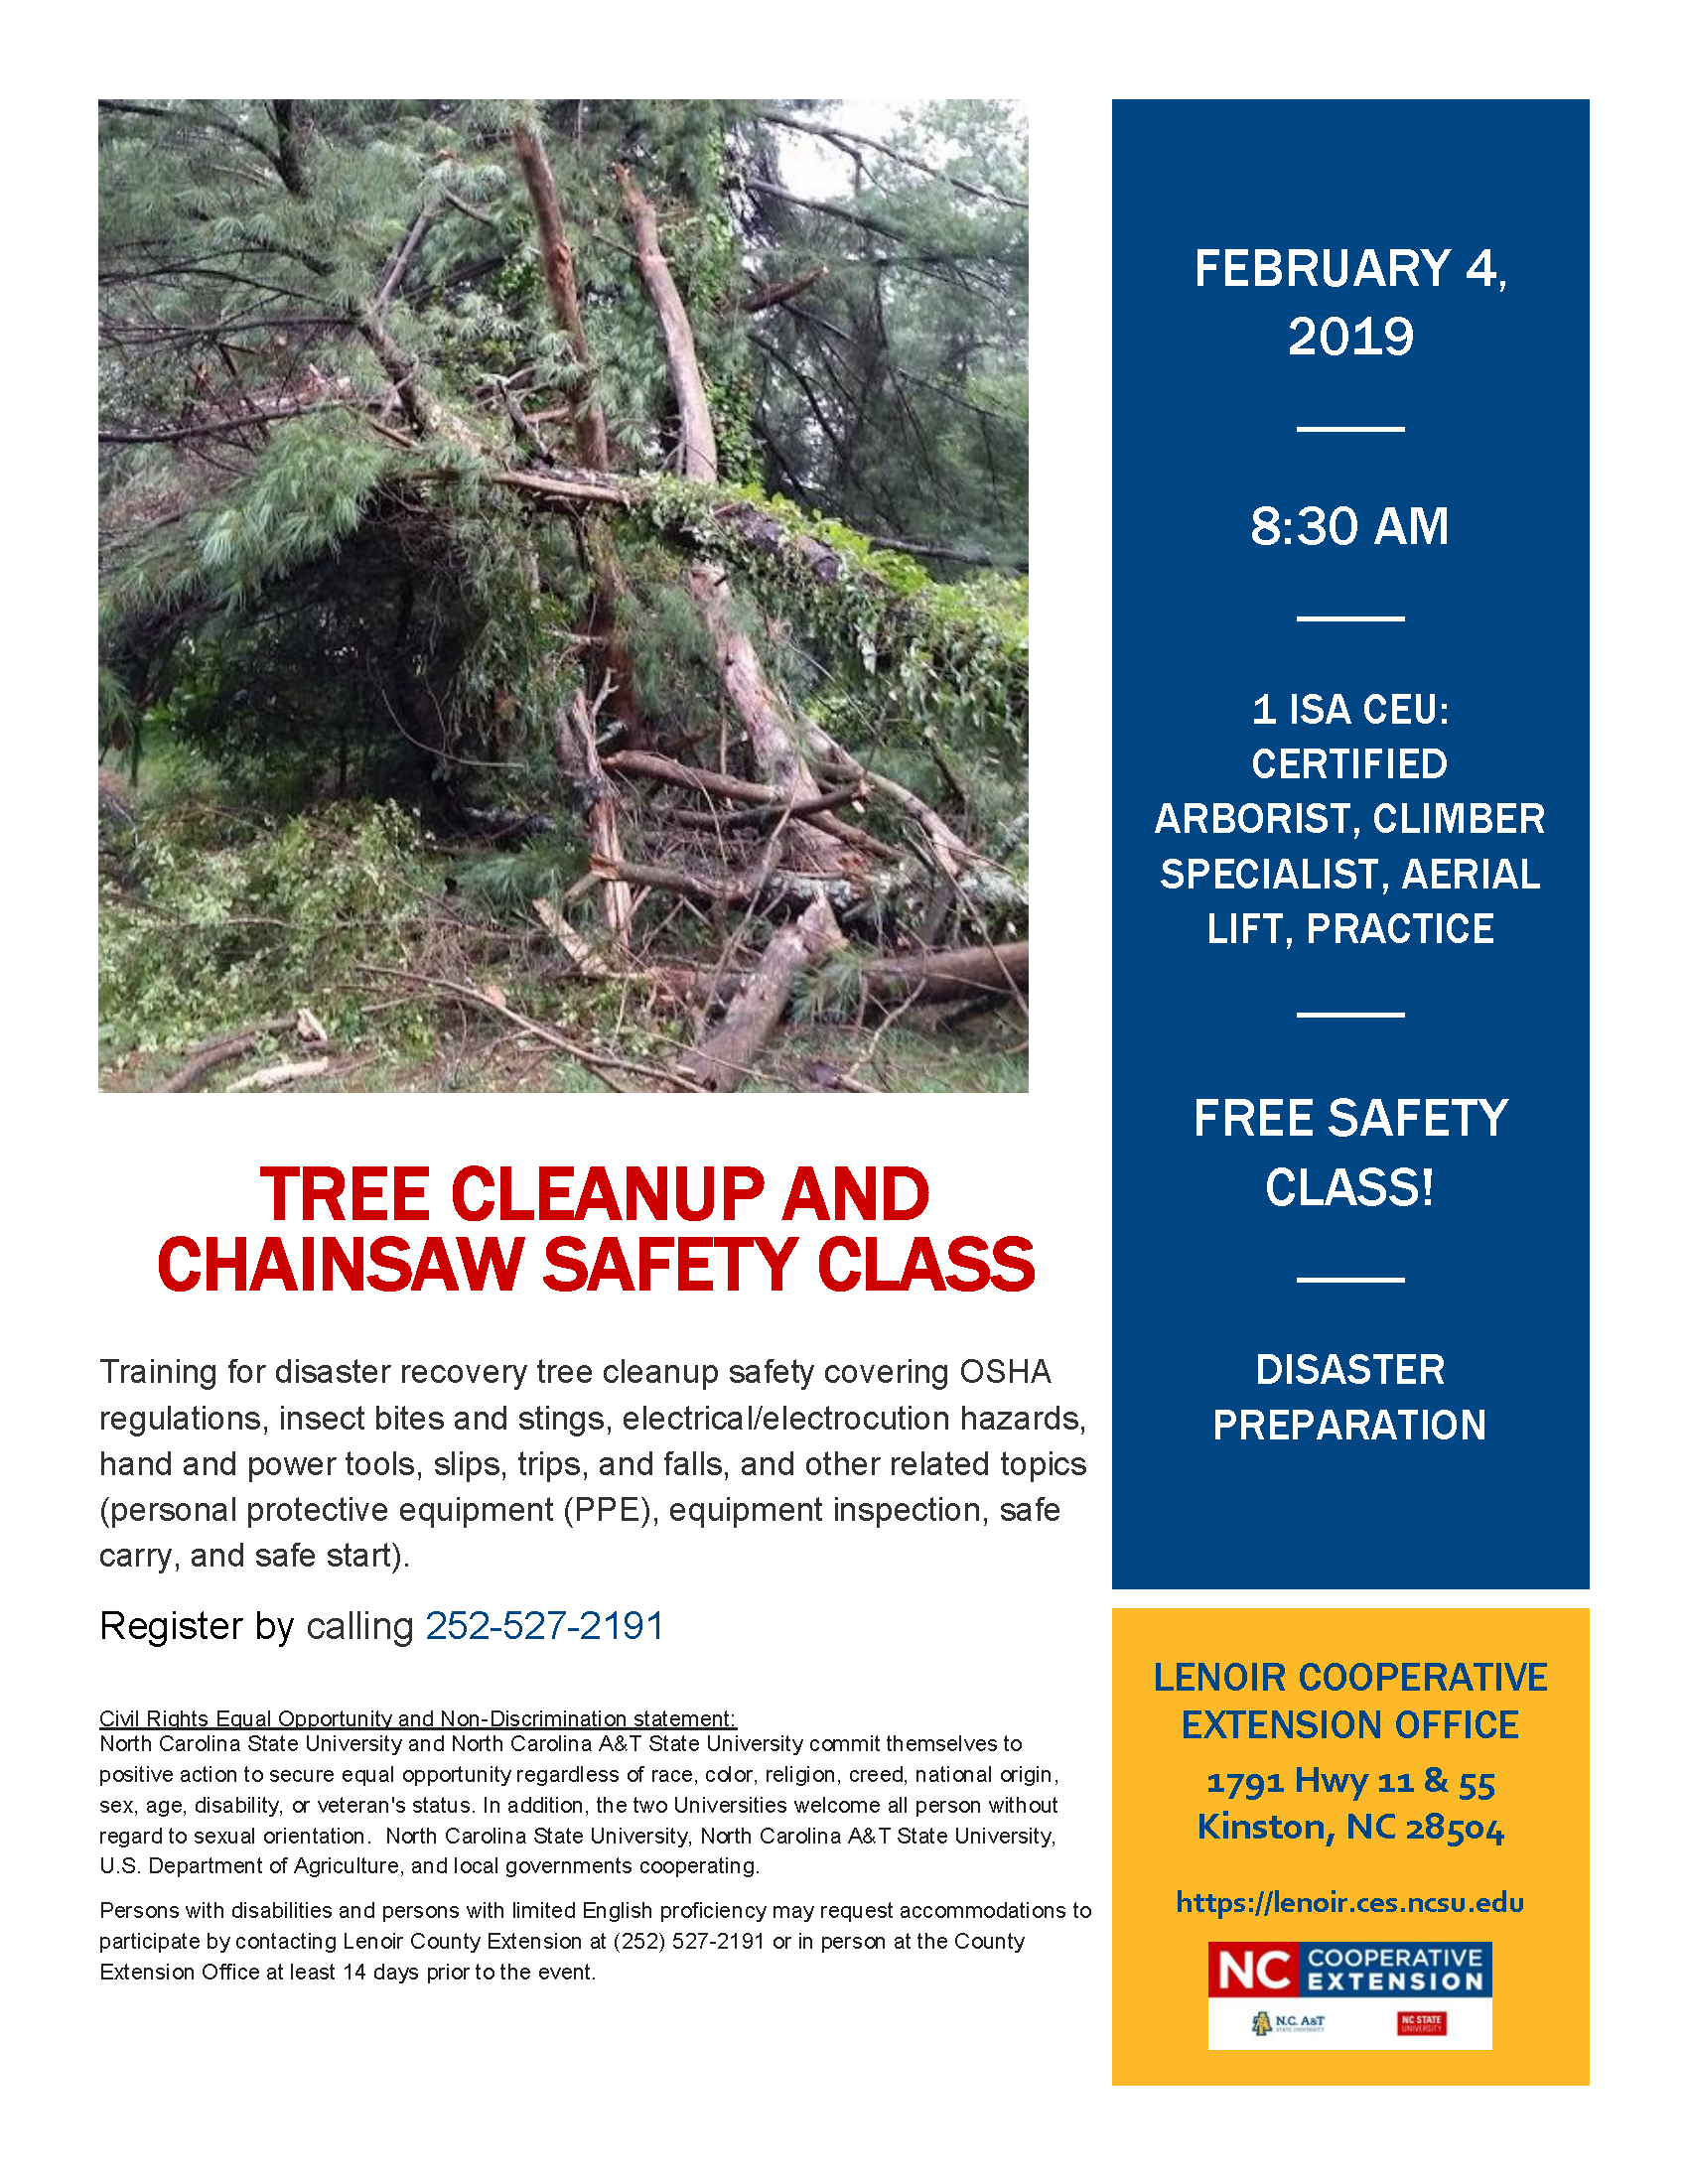 Chainsaw Safety flyer image